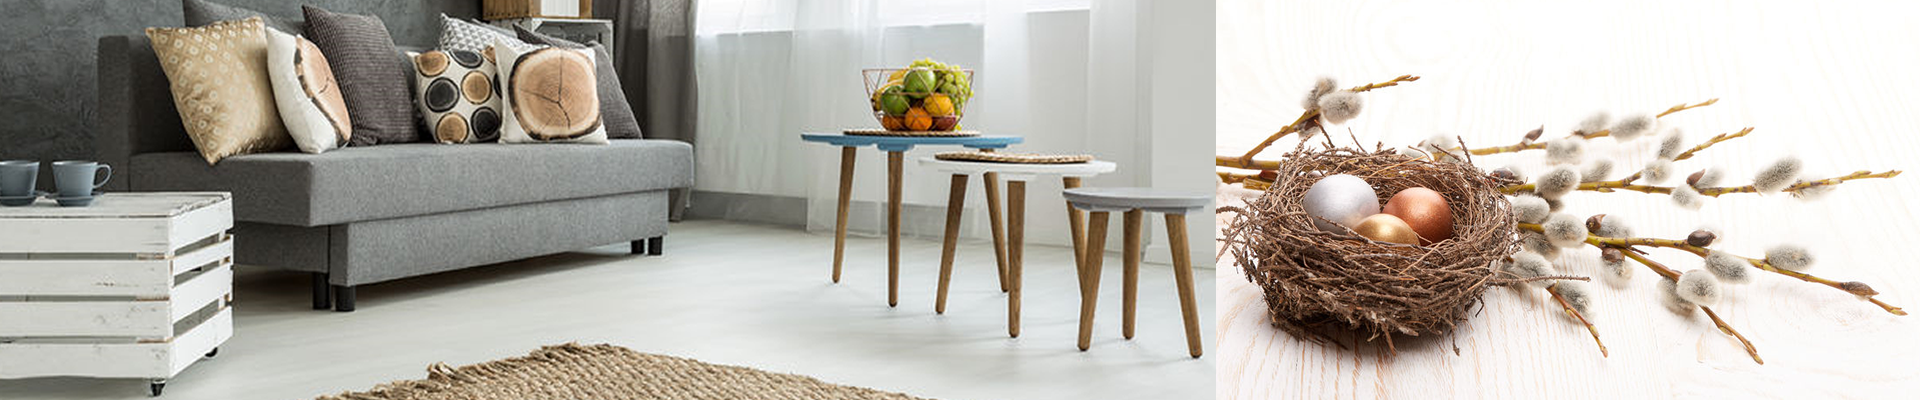 Nest Of Tables | Nesting Tables for the Living Room